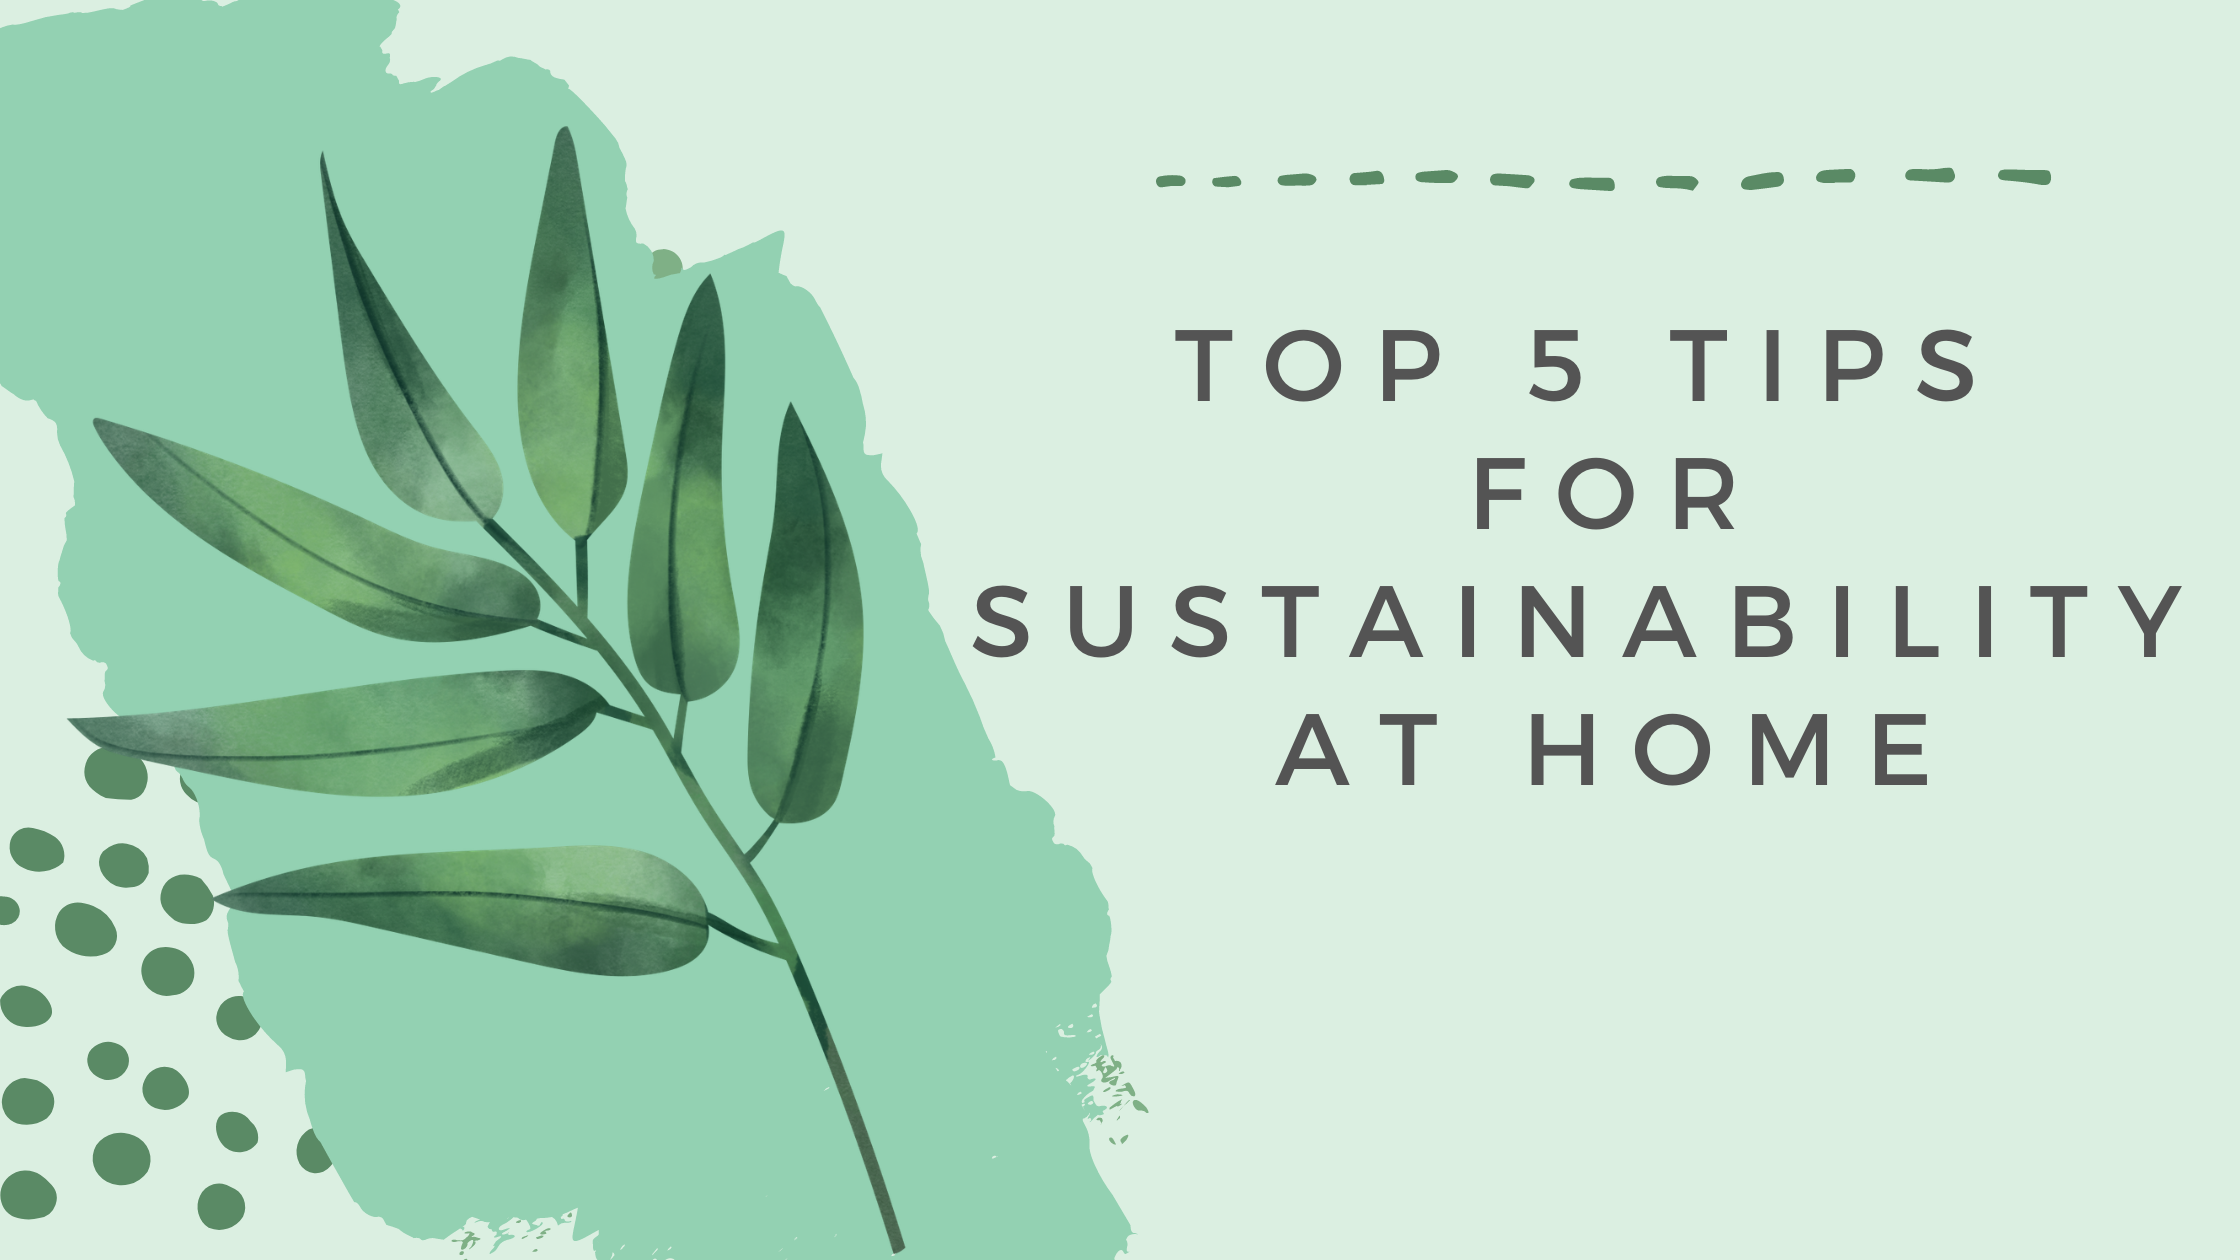 Top 5 tips for sustainability at home